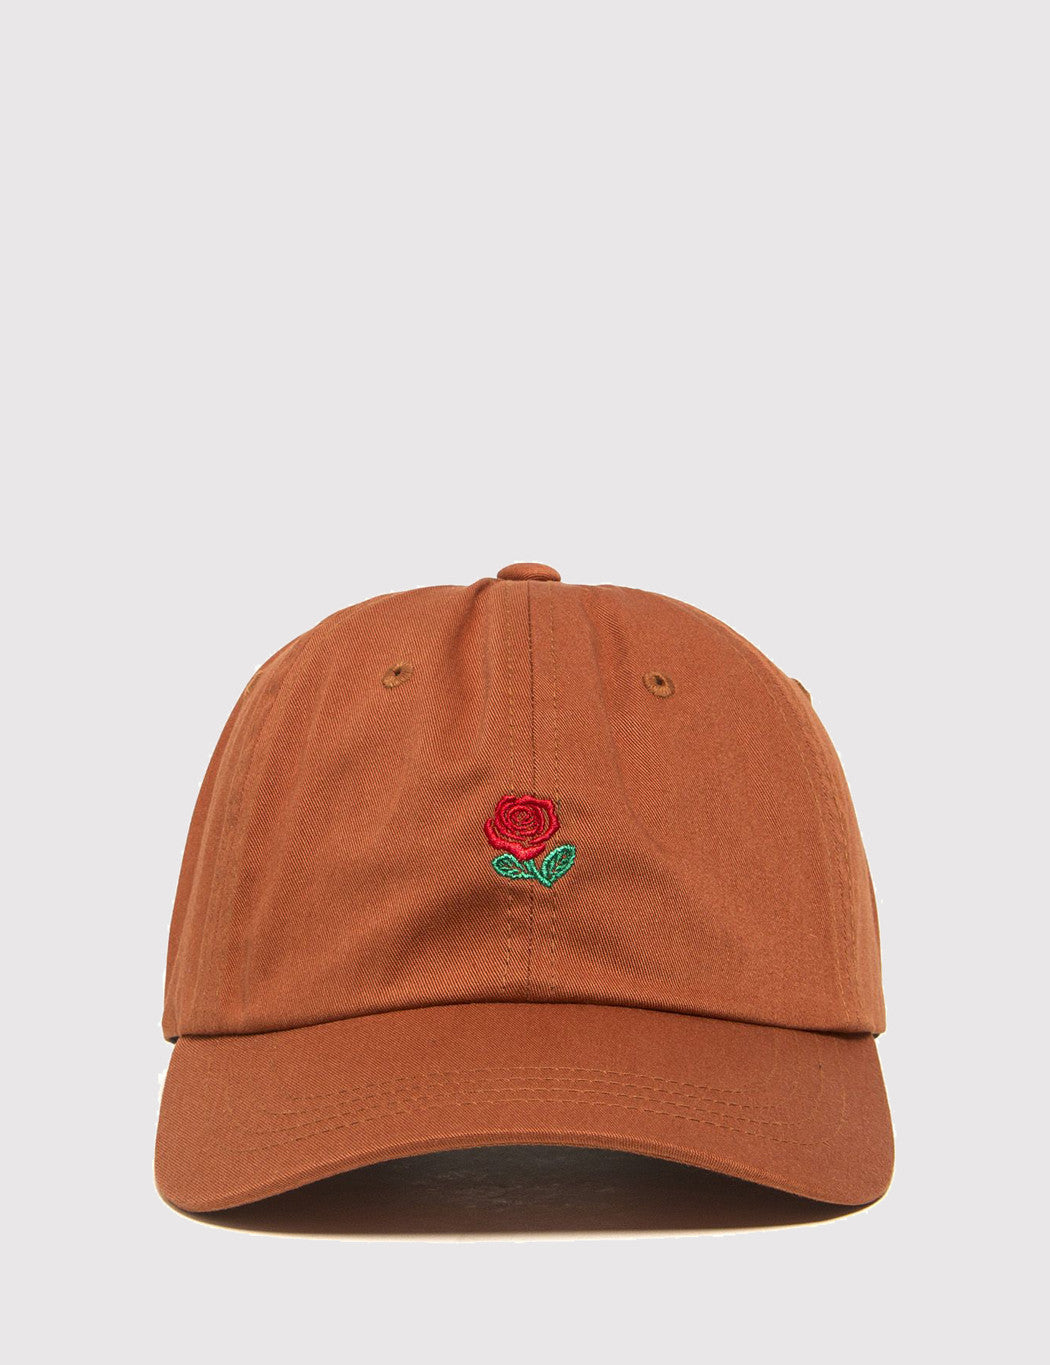 The Hundreds The Rose Curved Peak Cap - Field Tan